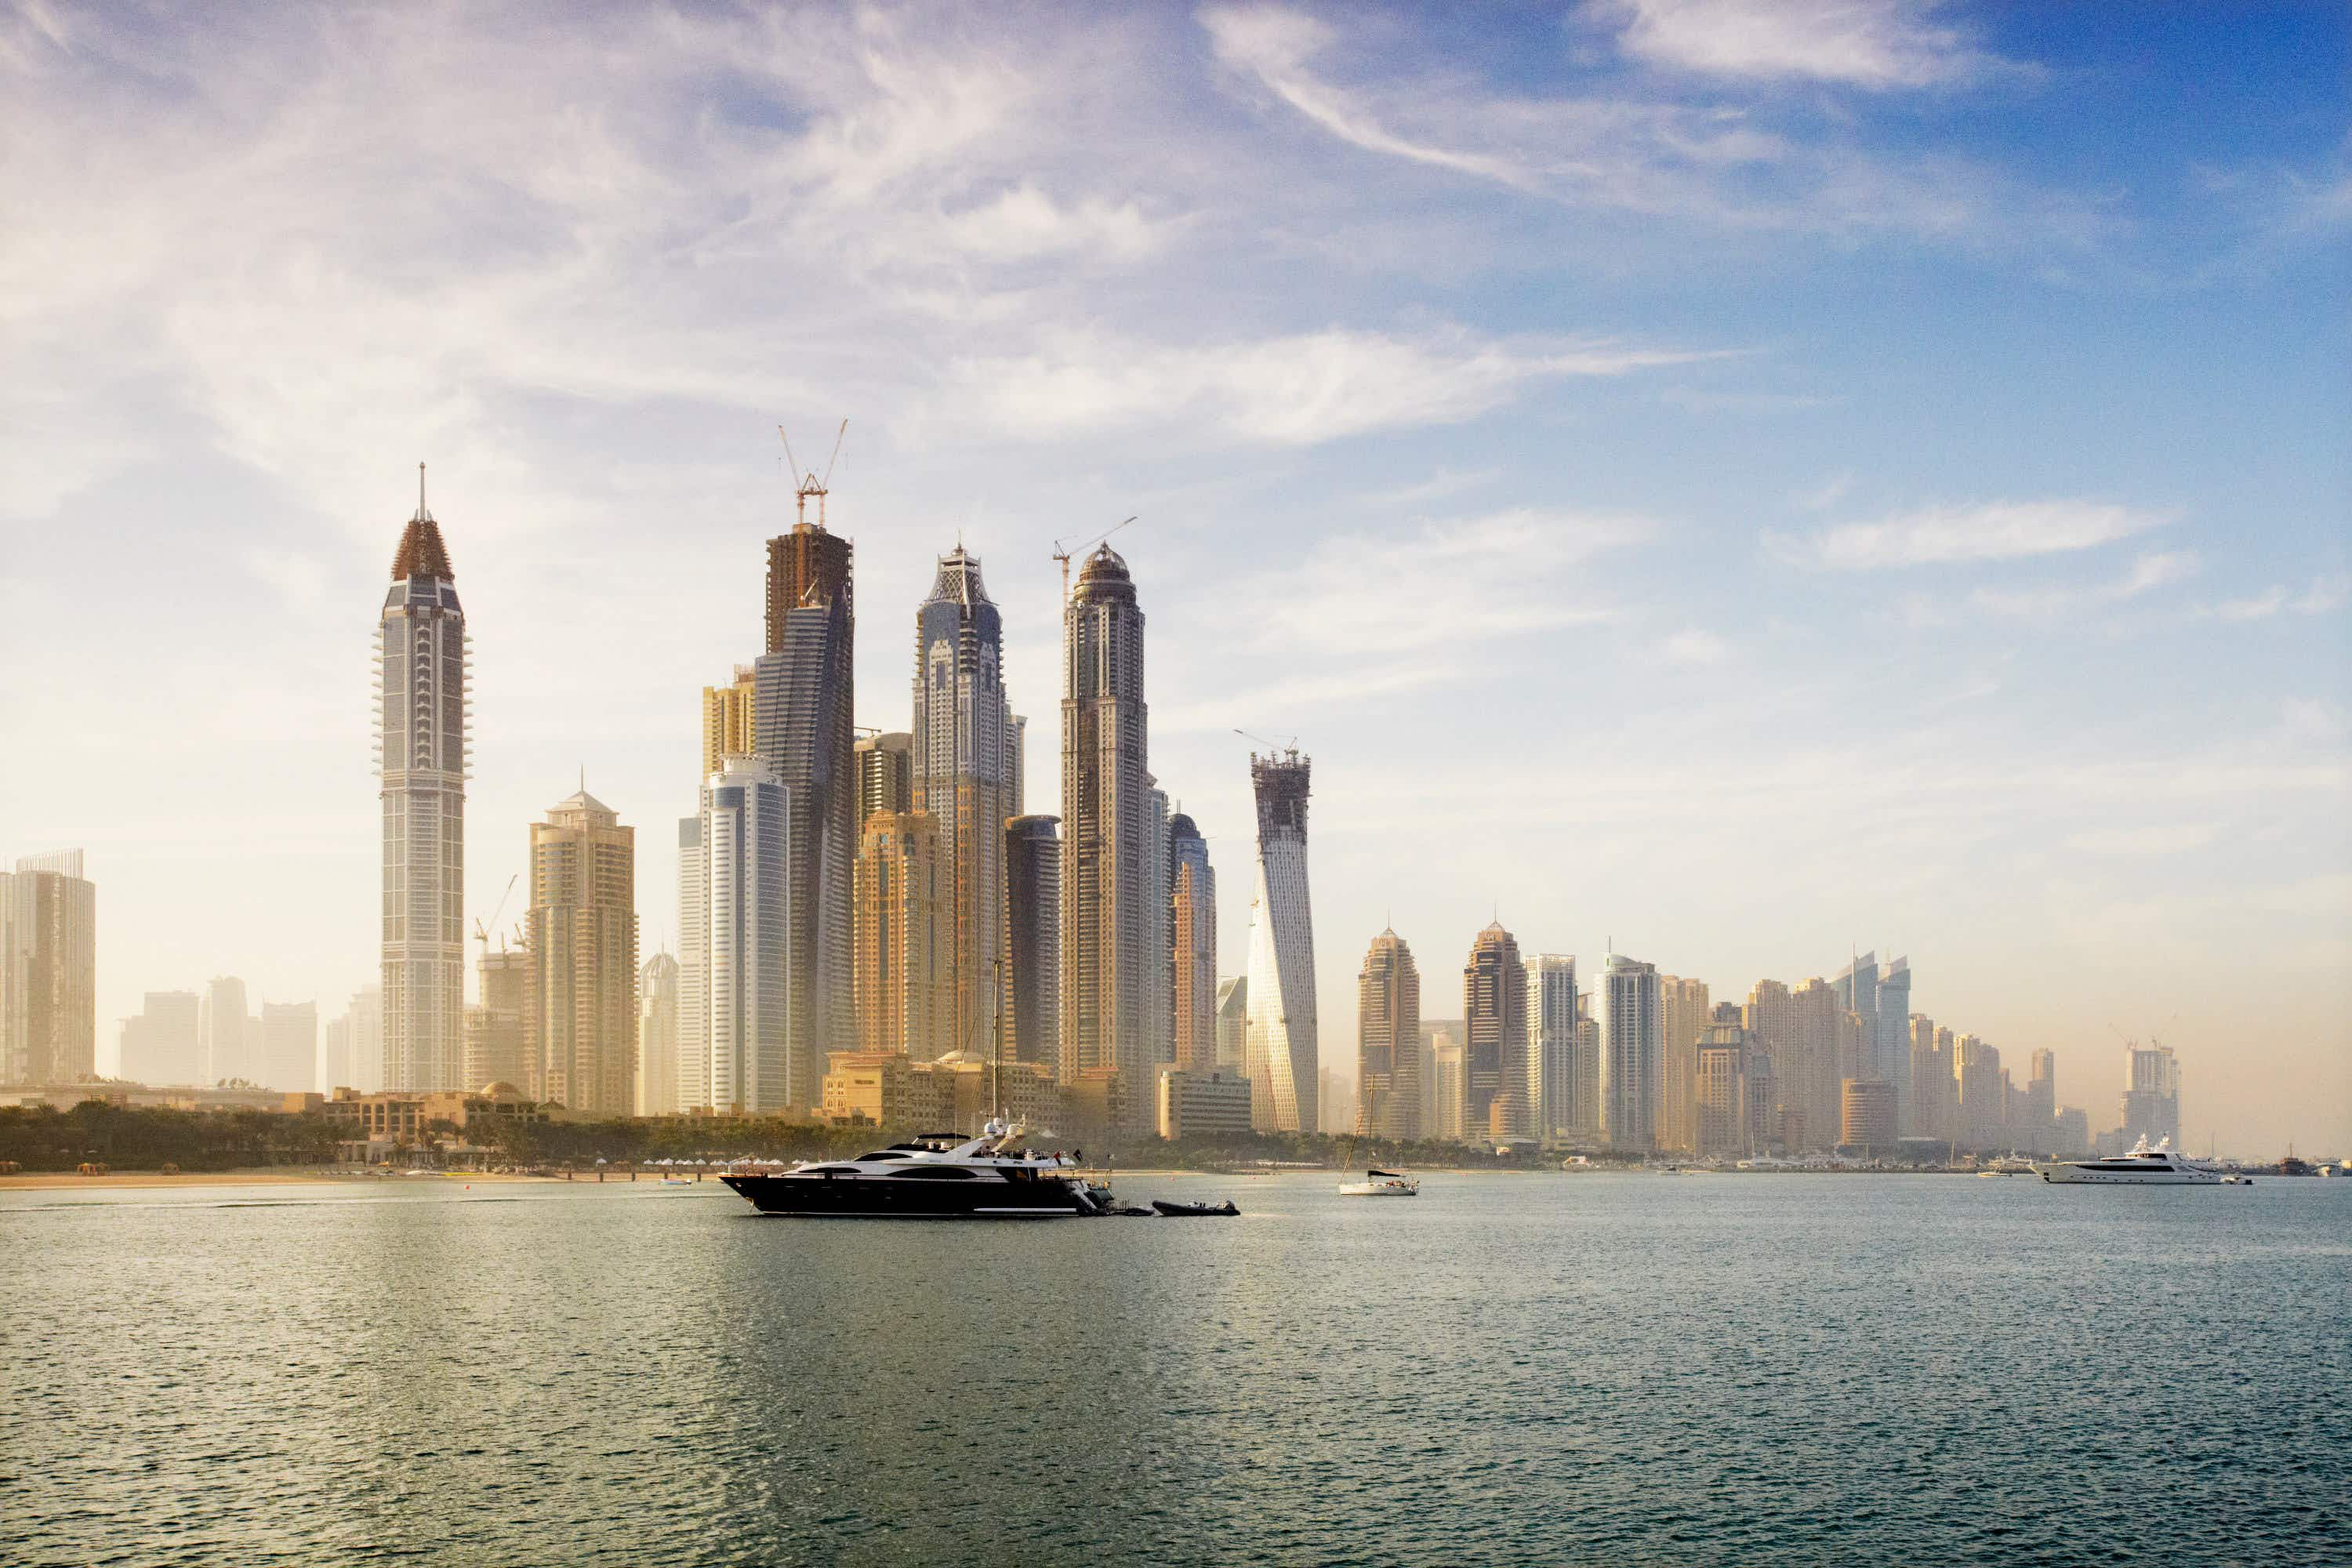 Dubai is the first Unesco Creative City of Design in the Middle East